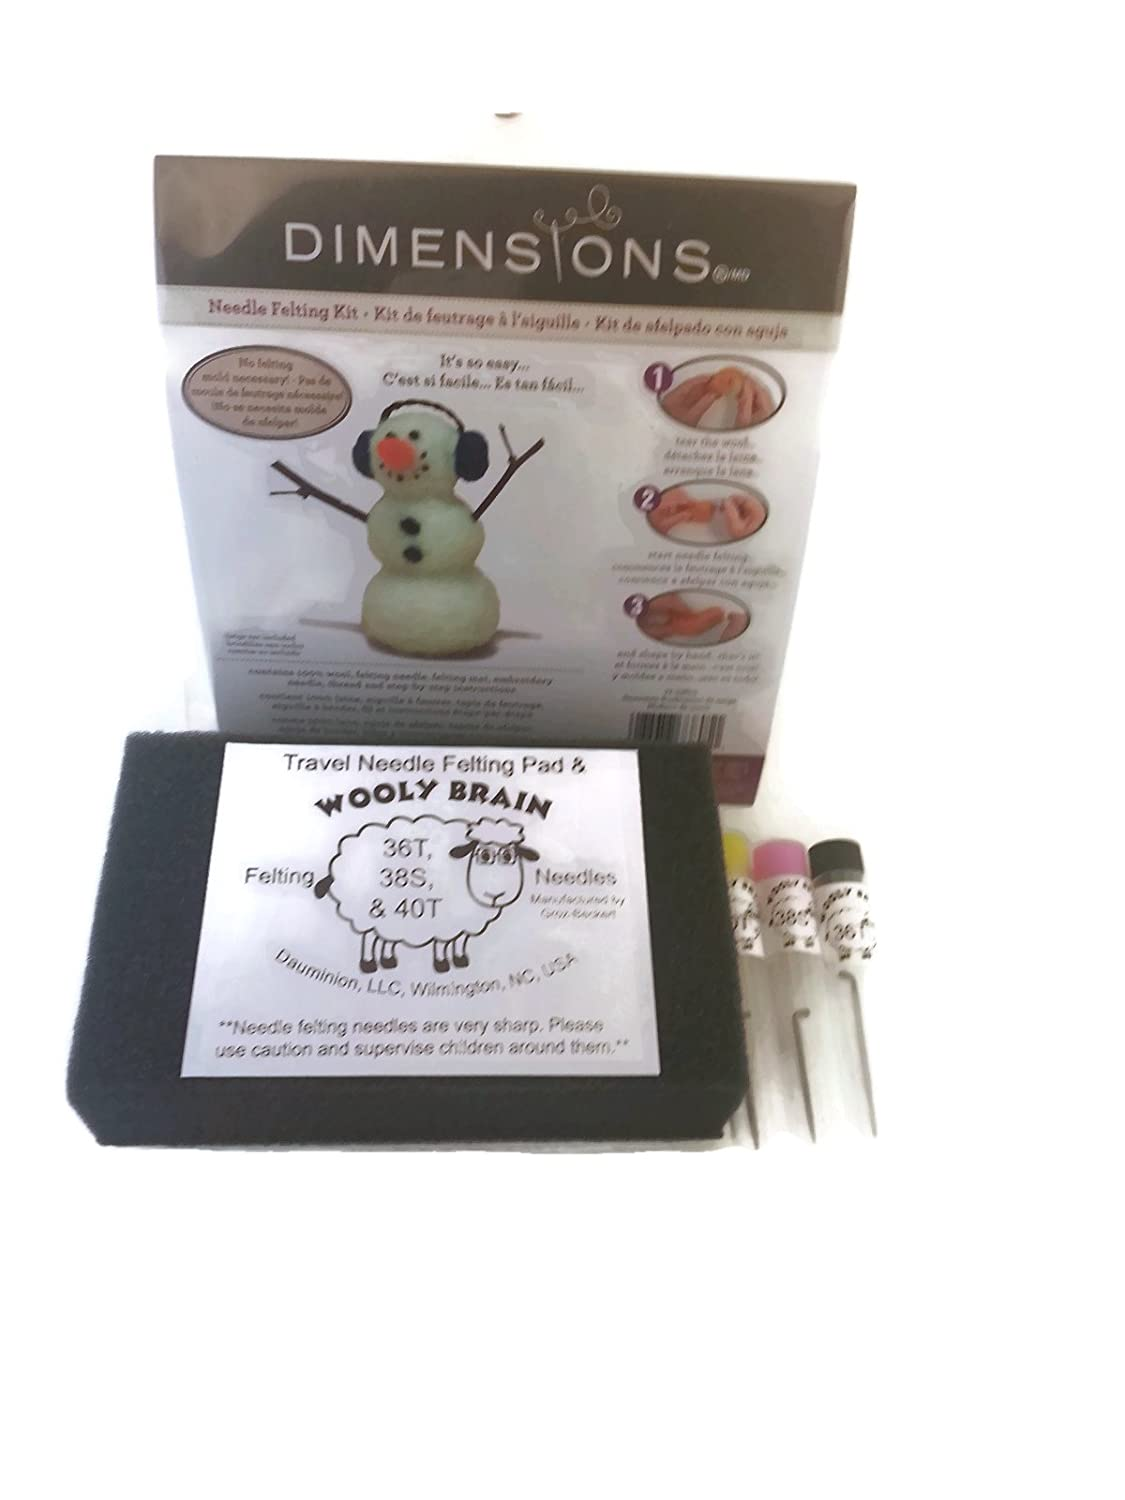 Amazon.com: Needle Felting Winter Bundle: Dimensions Snowman Kit, Wooly Brain Felting Pad and 3 Types of Needles: Arts, Crafts & Sewing